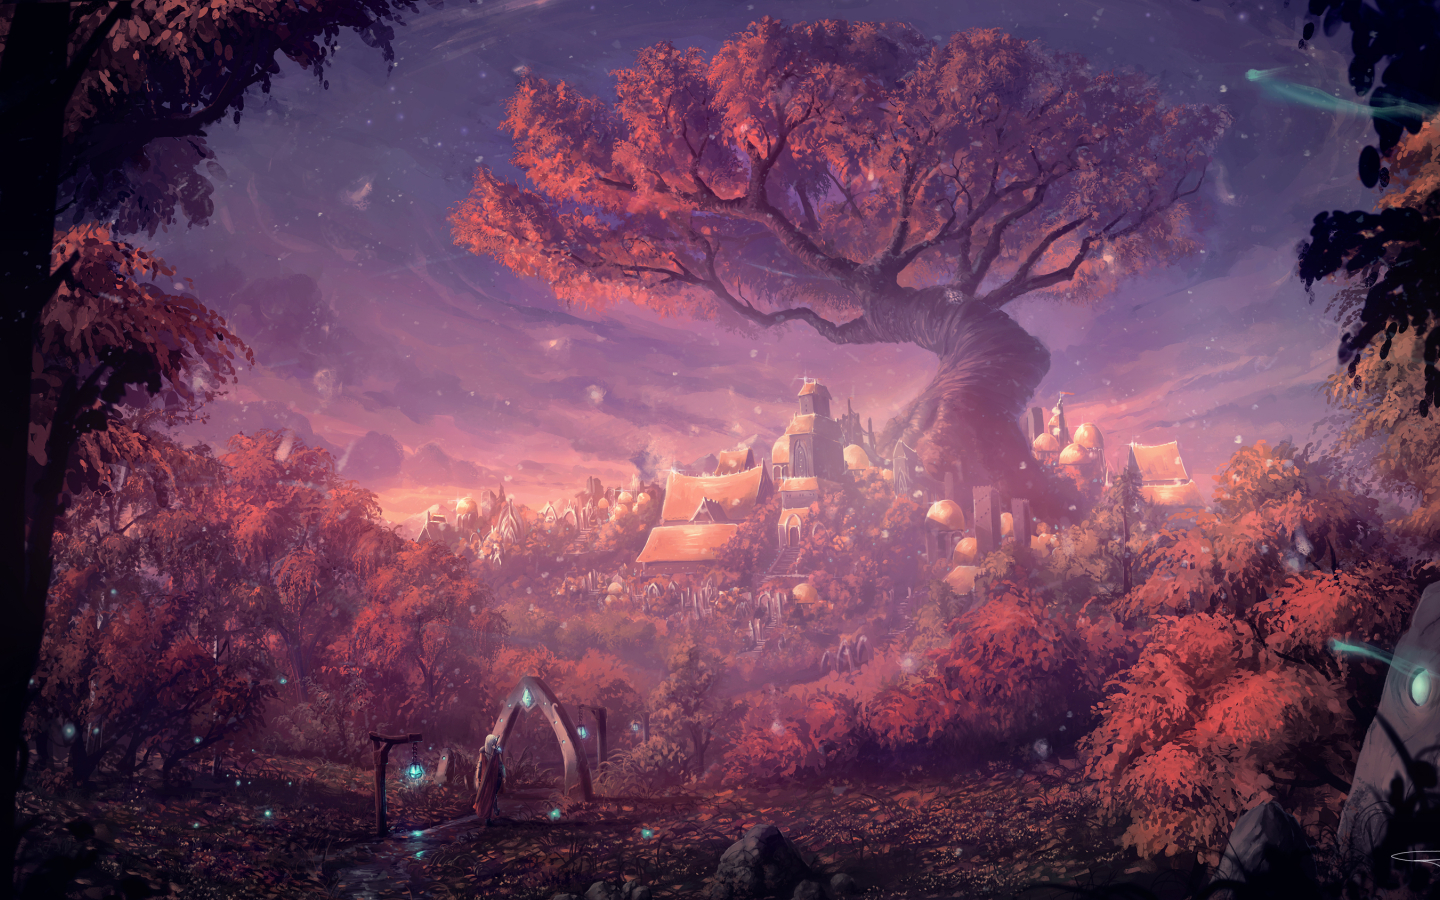 Fantasy Forest City Hd 4k Wallpaper